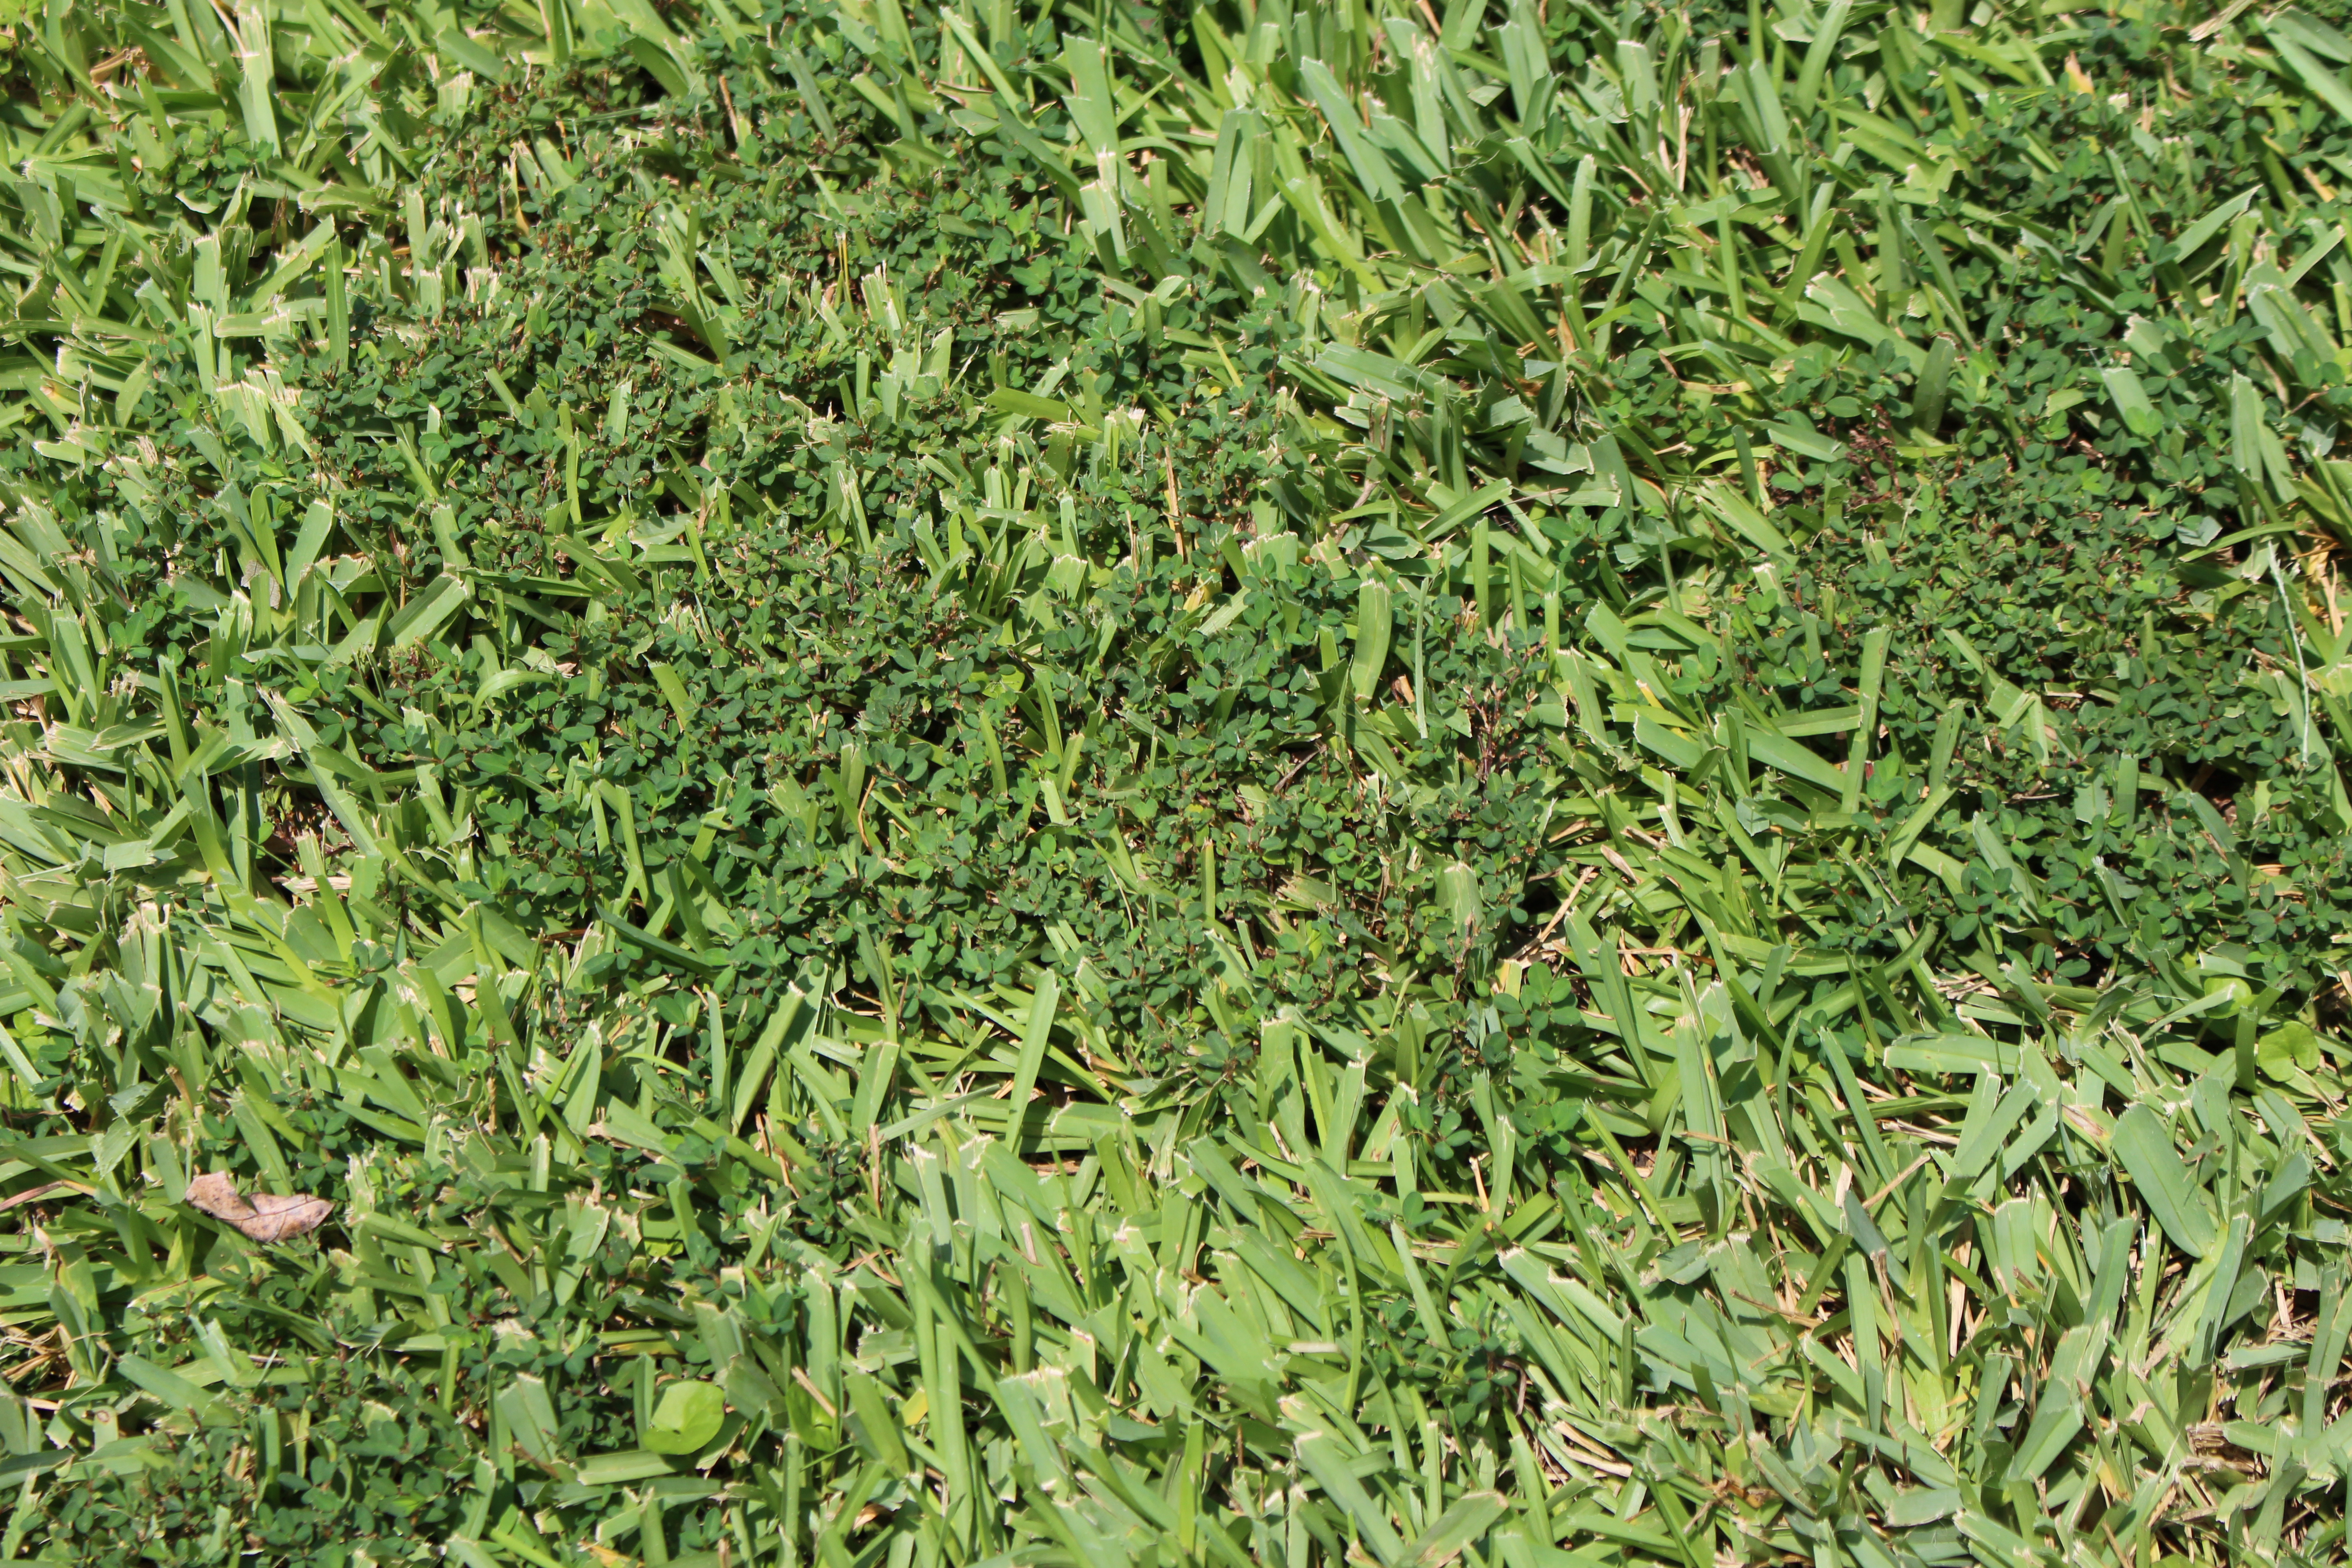 Lawn Weed Problem